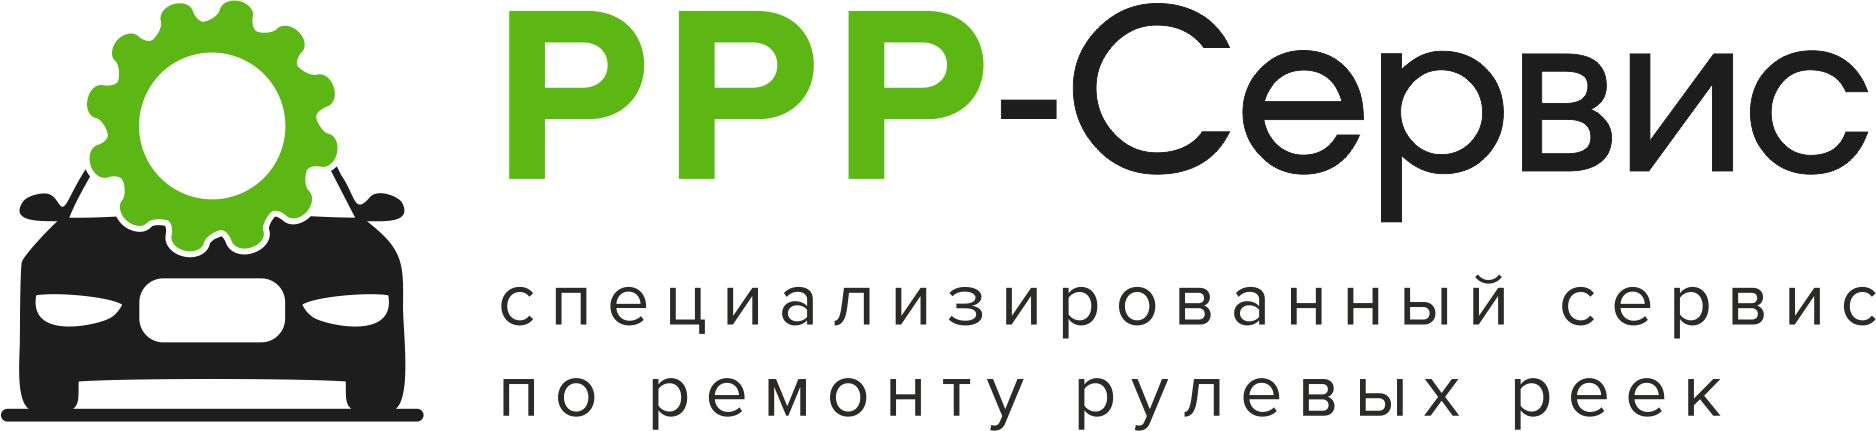 "Интернет магазин Opencart ""Русская сборка"""